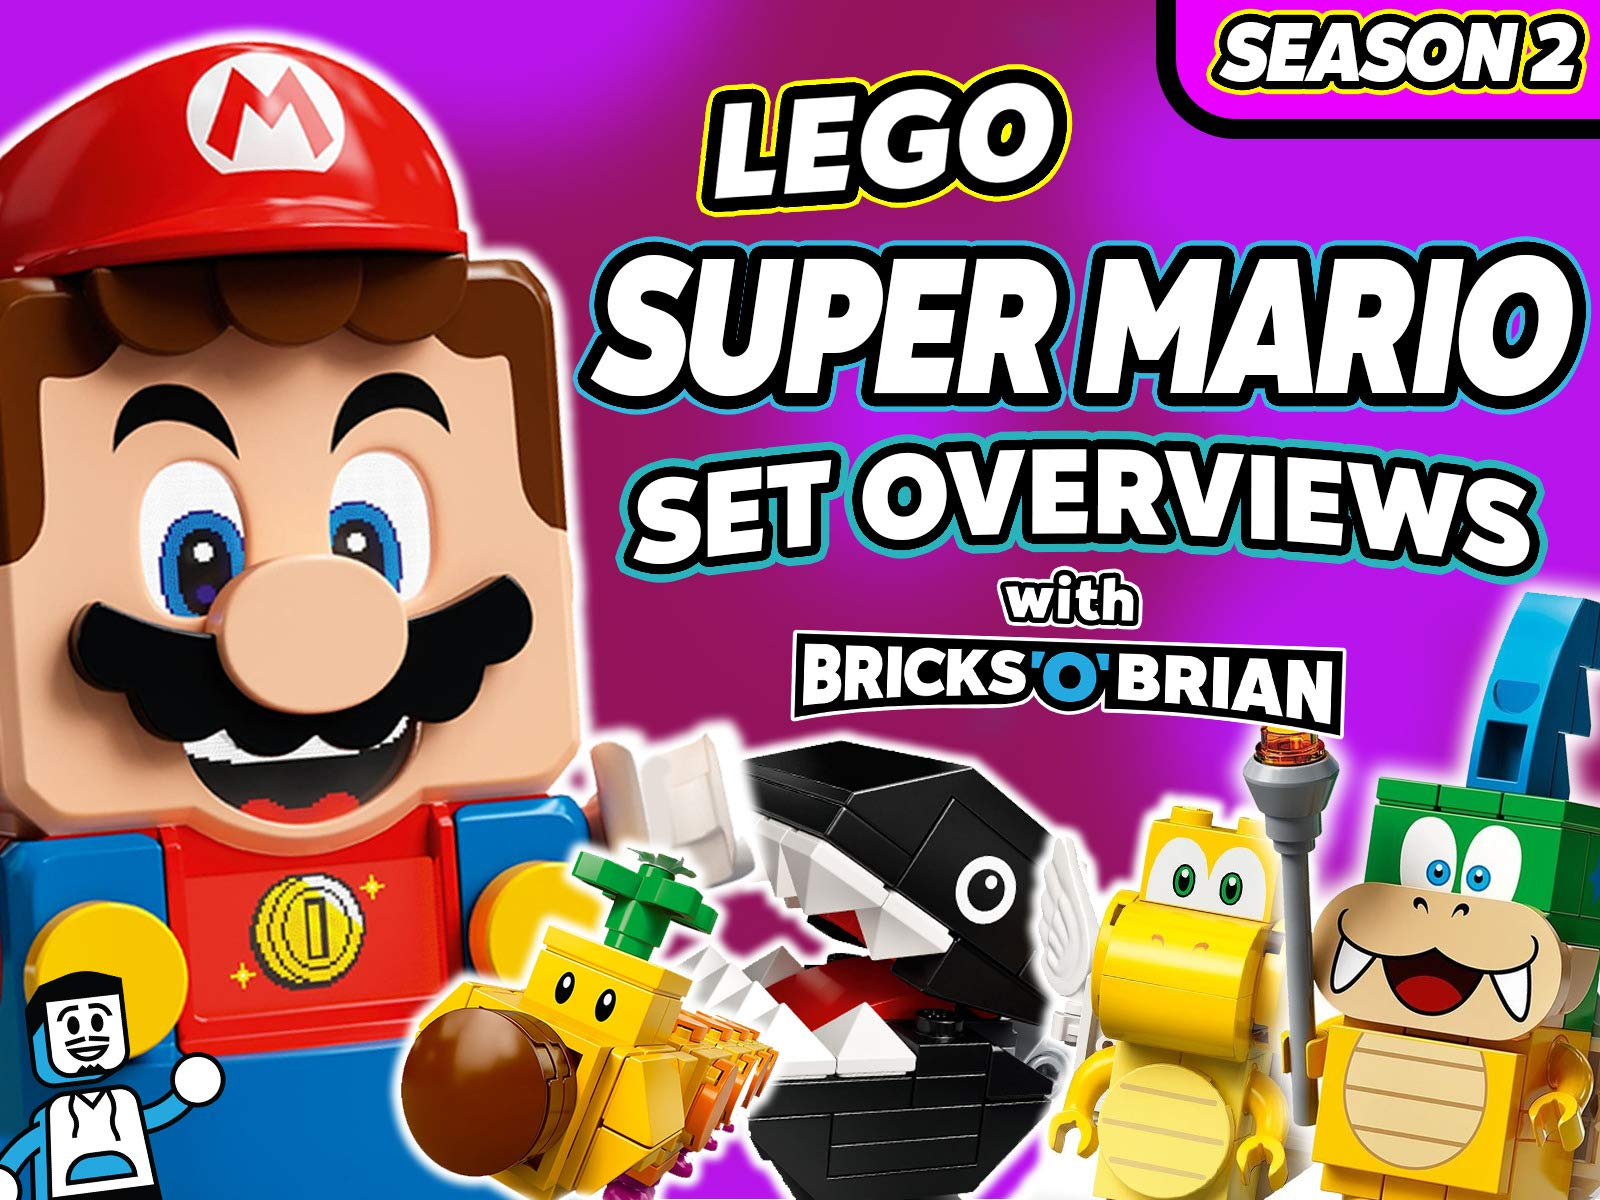 Clip: LEGO Super Mario Set Overviews with Bricks 'O' Brian! on Amazon Prime Video UK